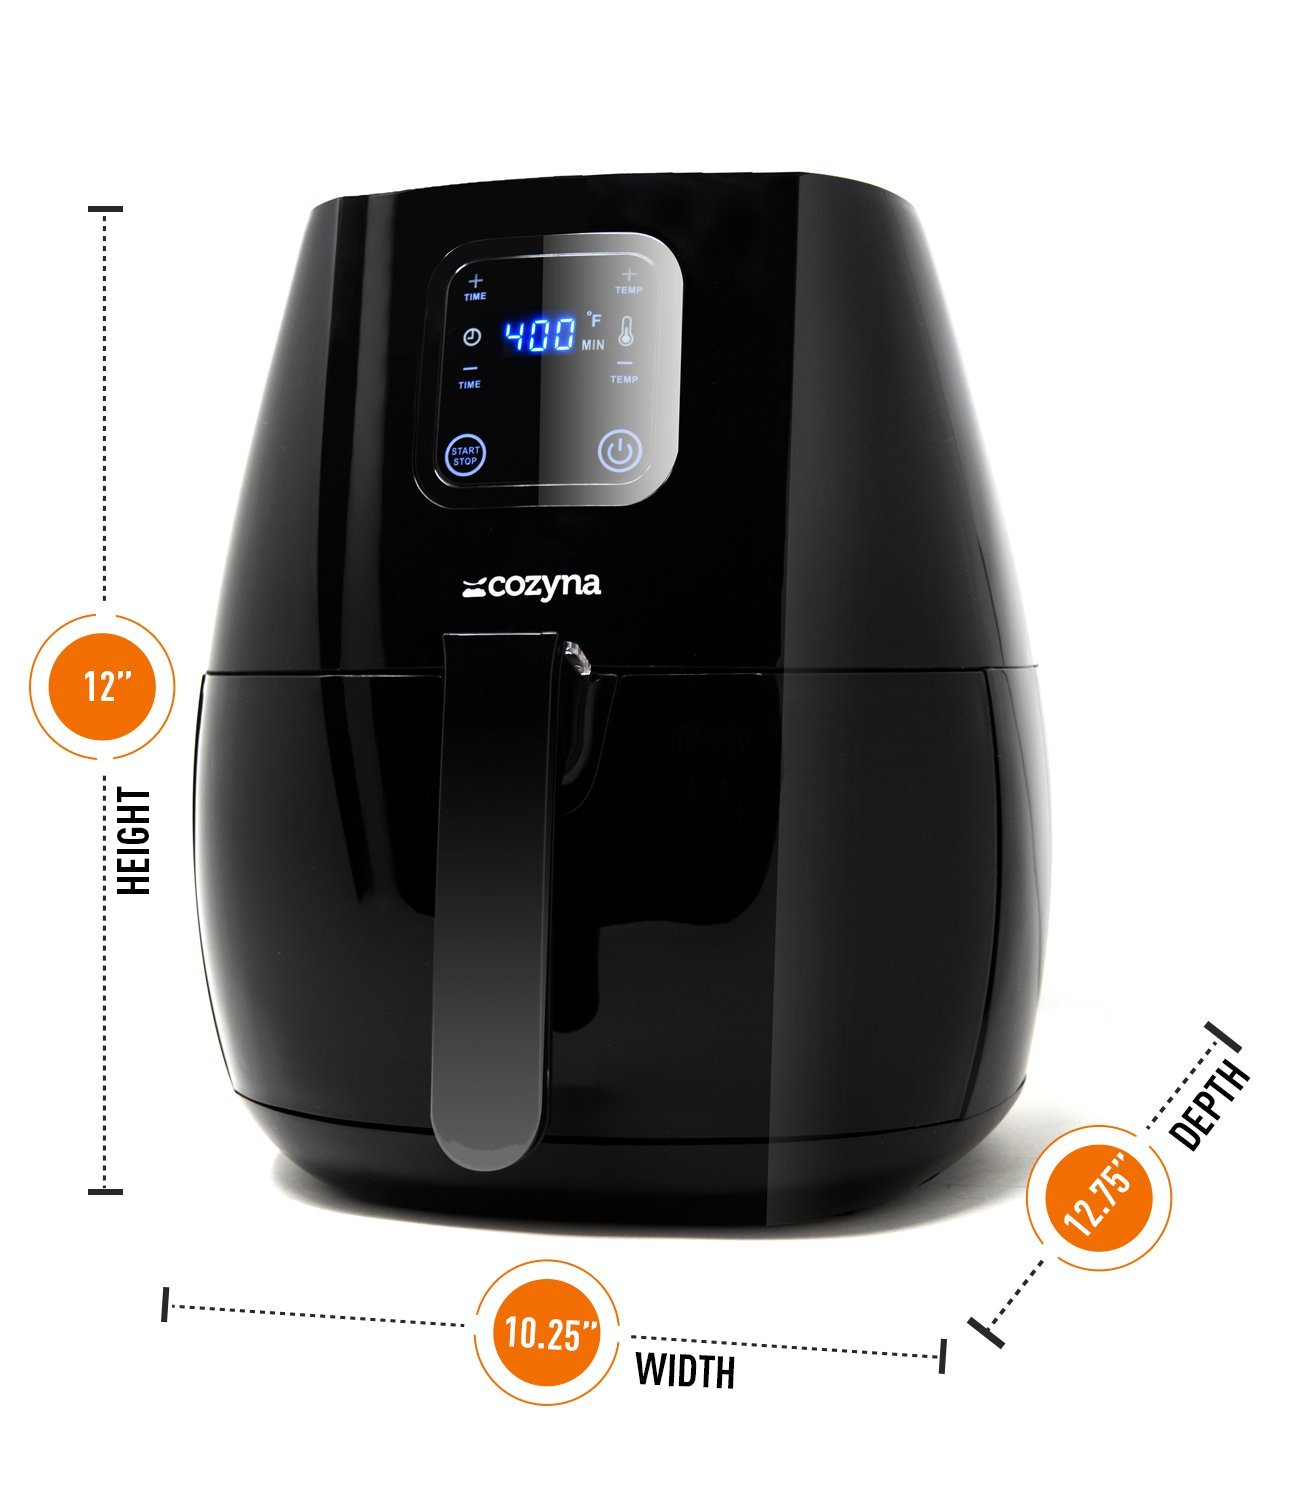 Cozyna SAF-32 Digital Air Fryer Touchscreen (3.7QT) with 2 airfryer cookbooks and a Skewer Rack Accessory by Cozyna (Image #4)